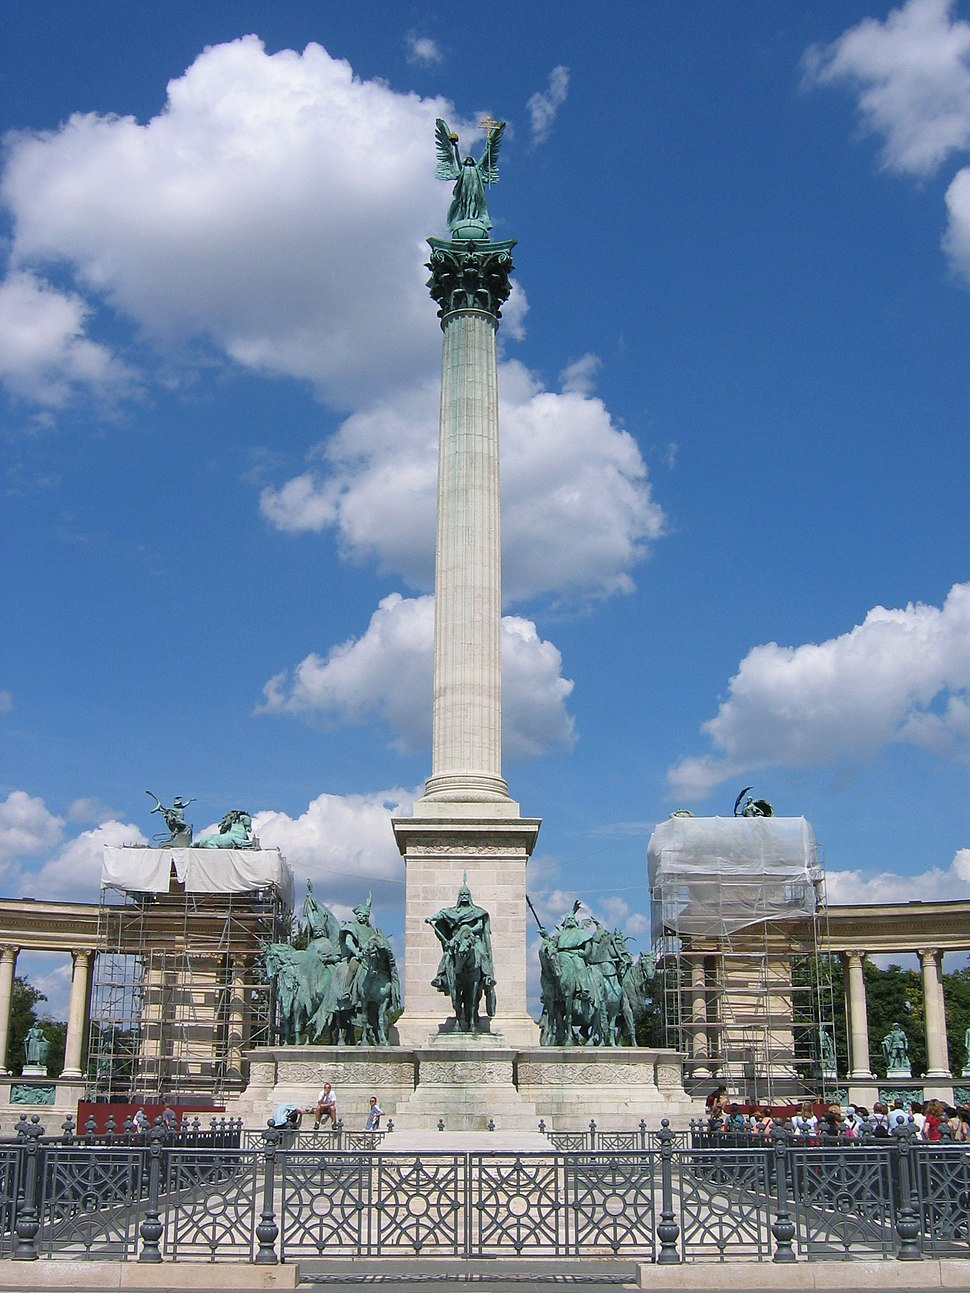 Seven chieftains of the Magyars and Statue of Gabriel. Millennium Monument. Budapest 029